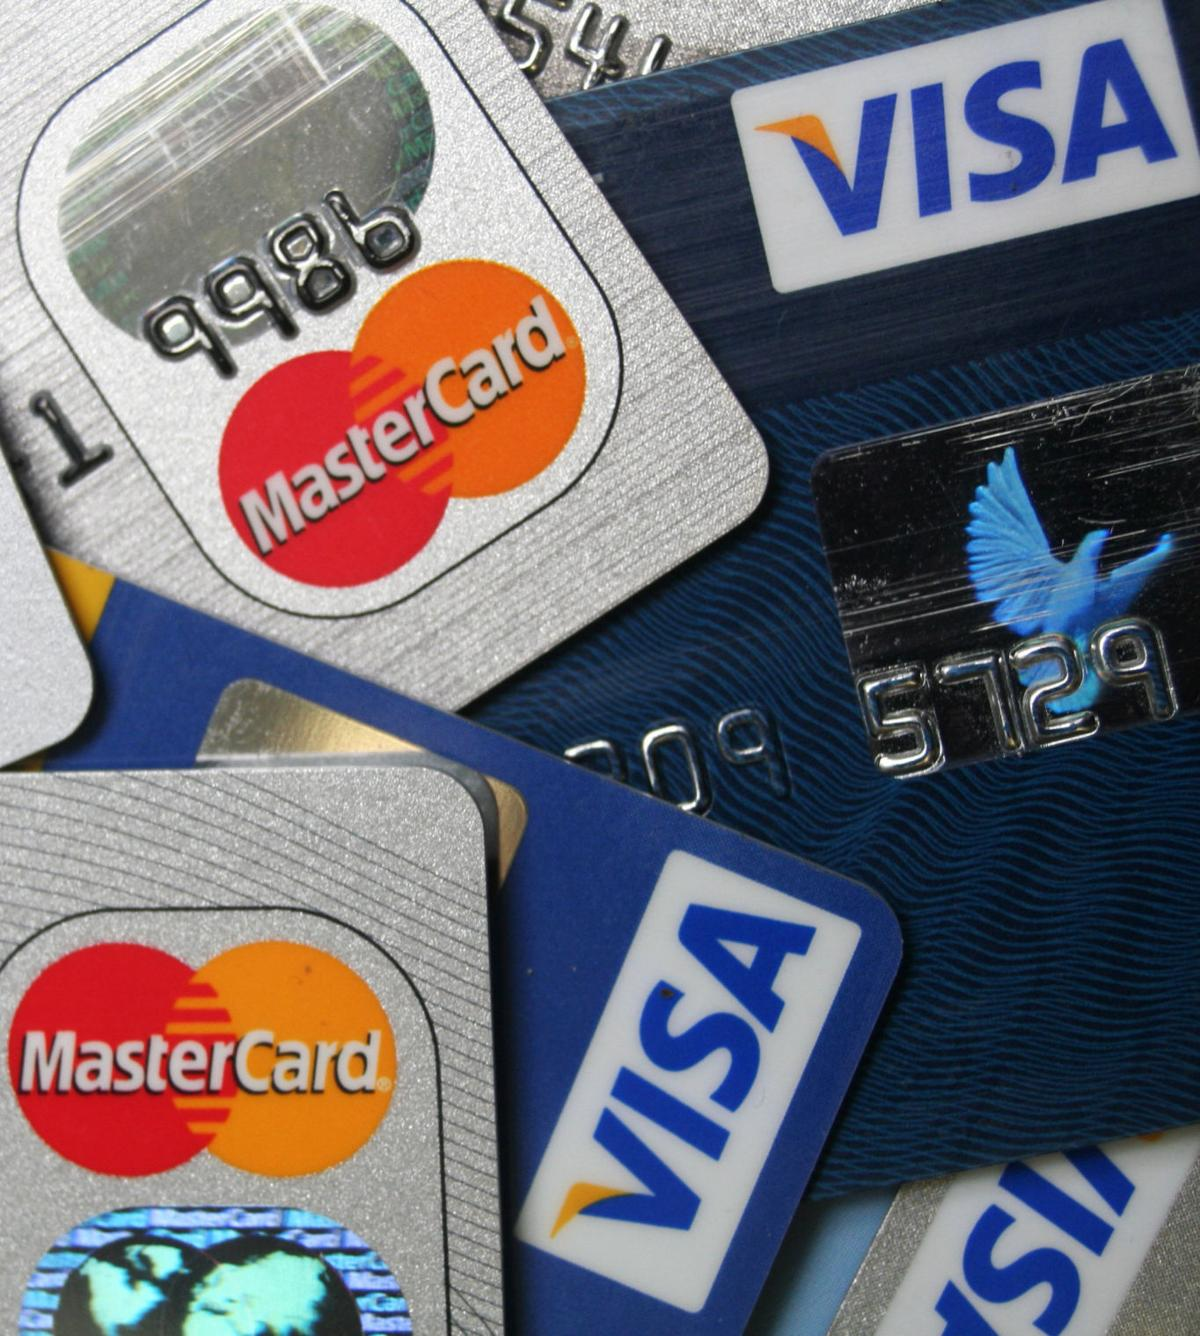 Canceling credit cards can harm credit score